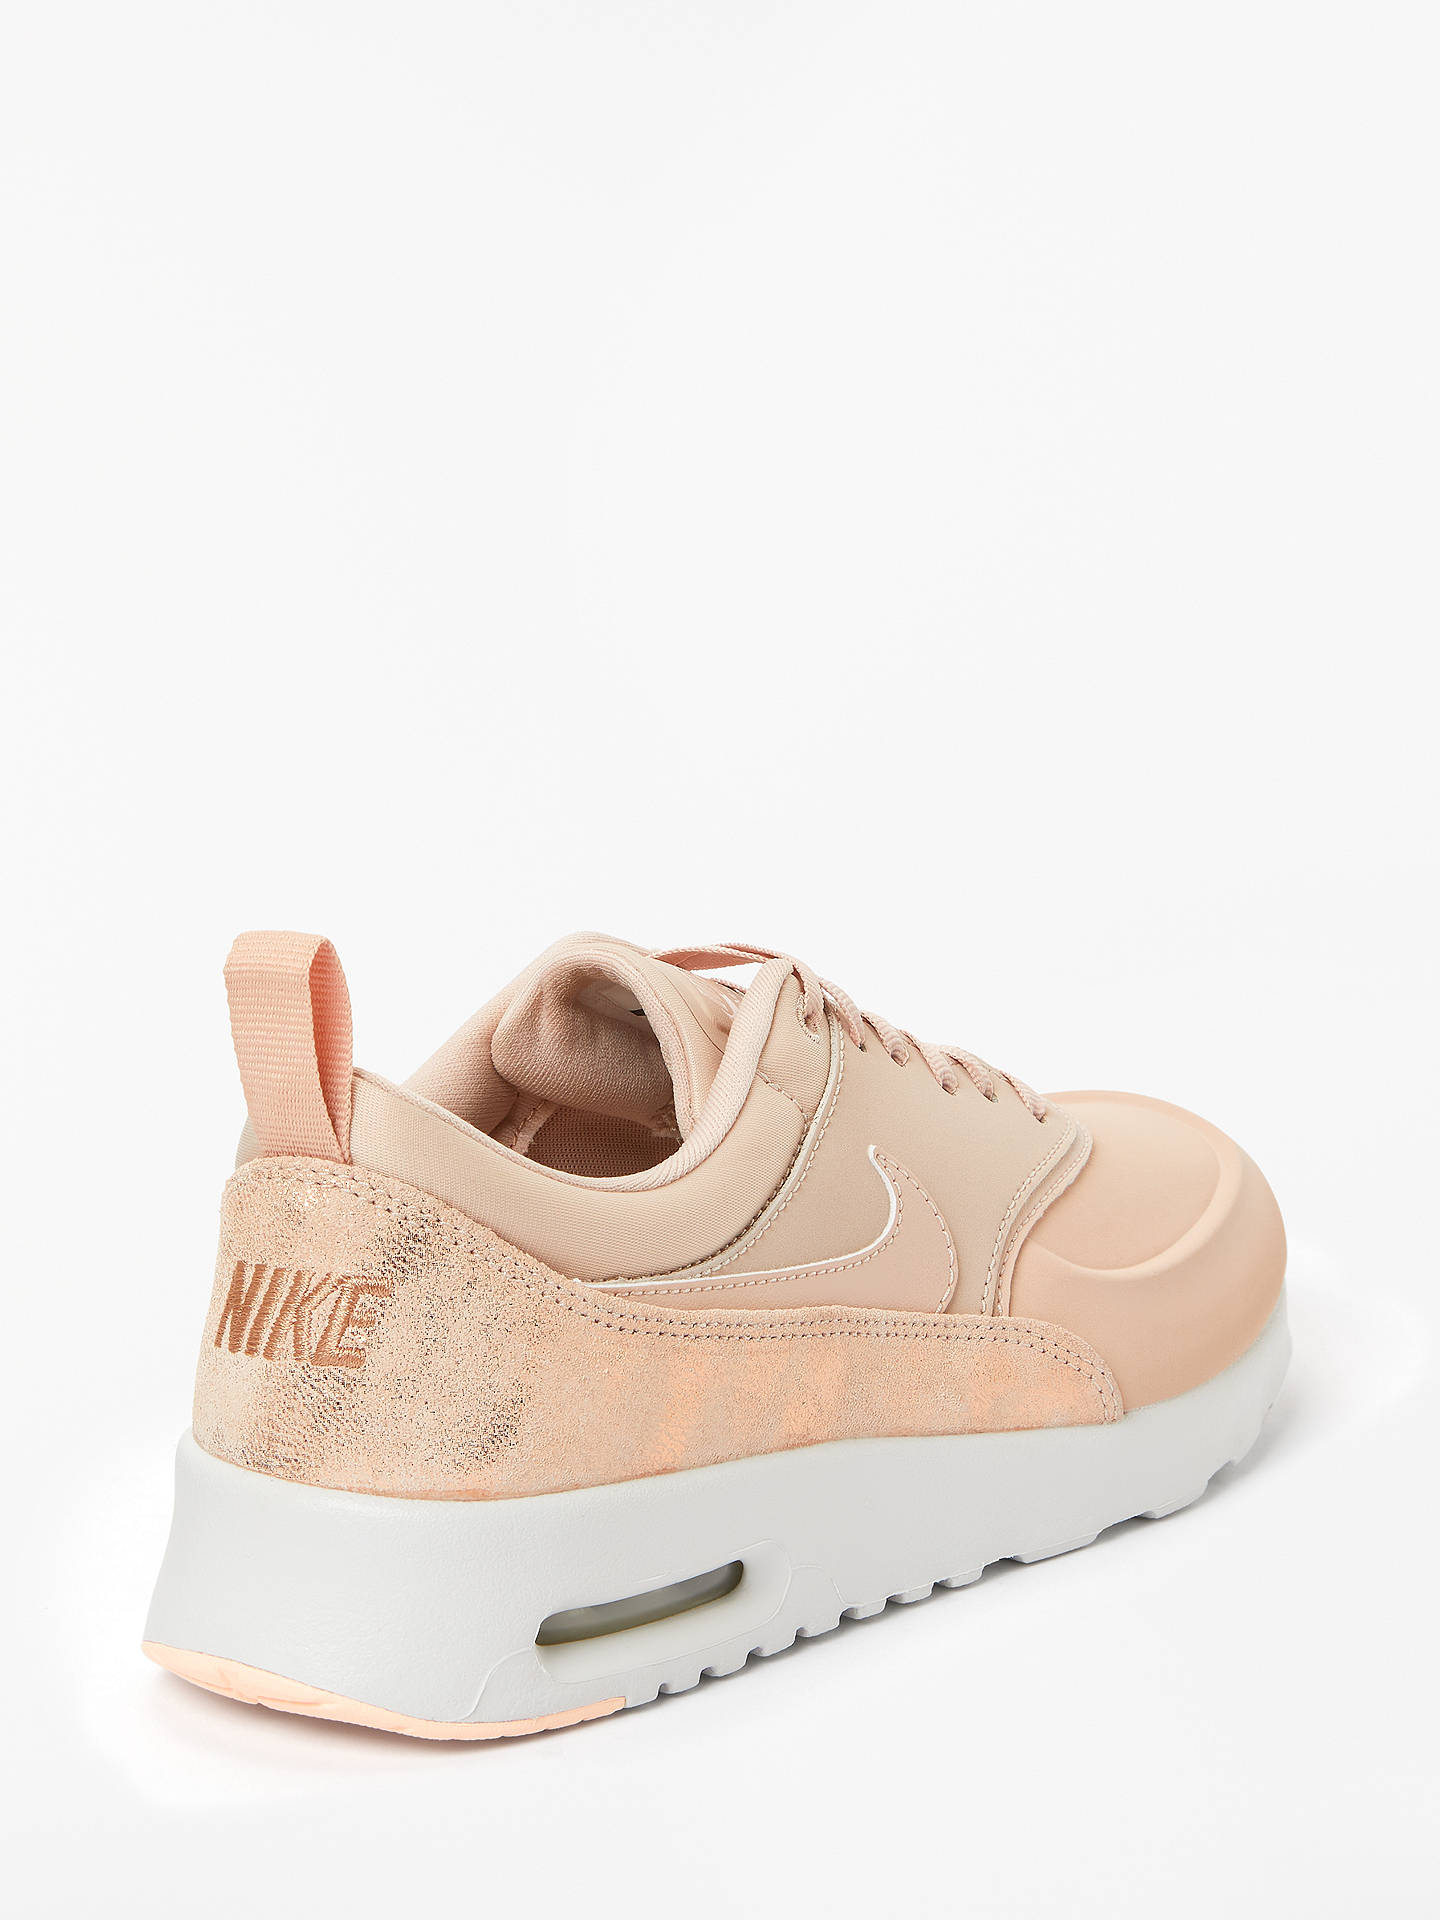 Rayo conferencia Unidad  Nike Air Max Thea Premium Women's Trainers, Particle Beige at John Lewis &  Partners